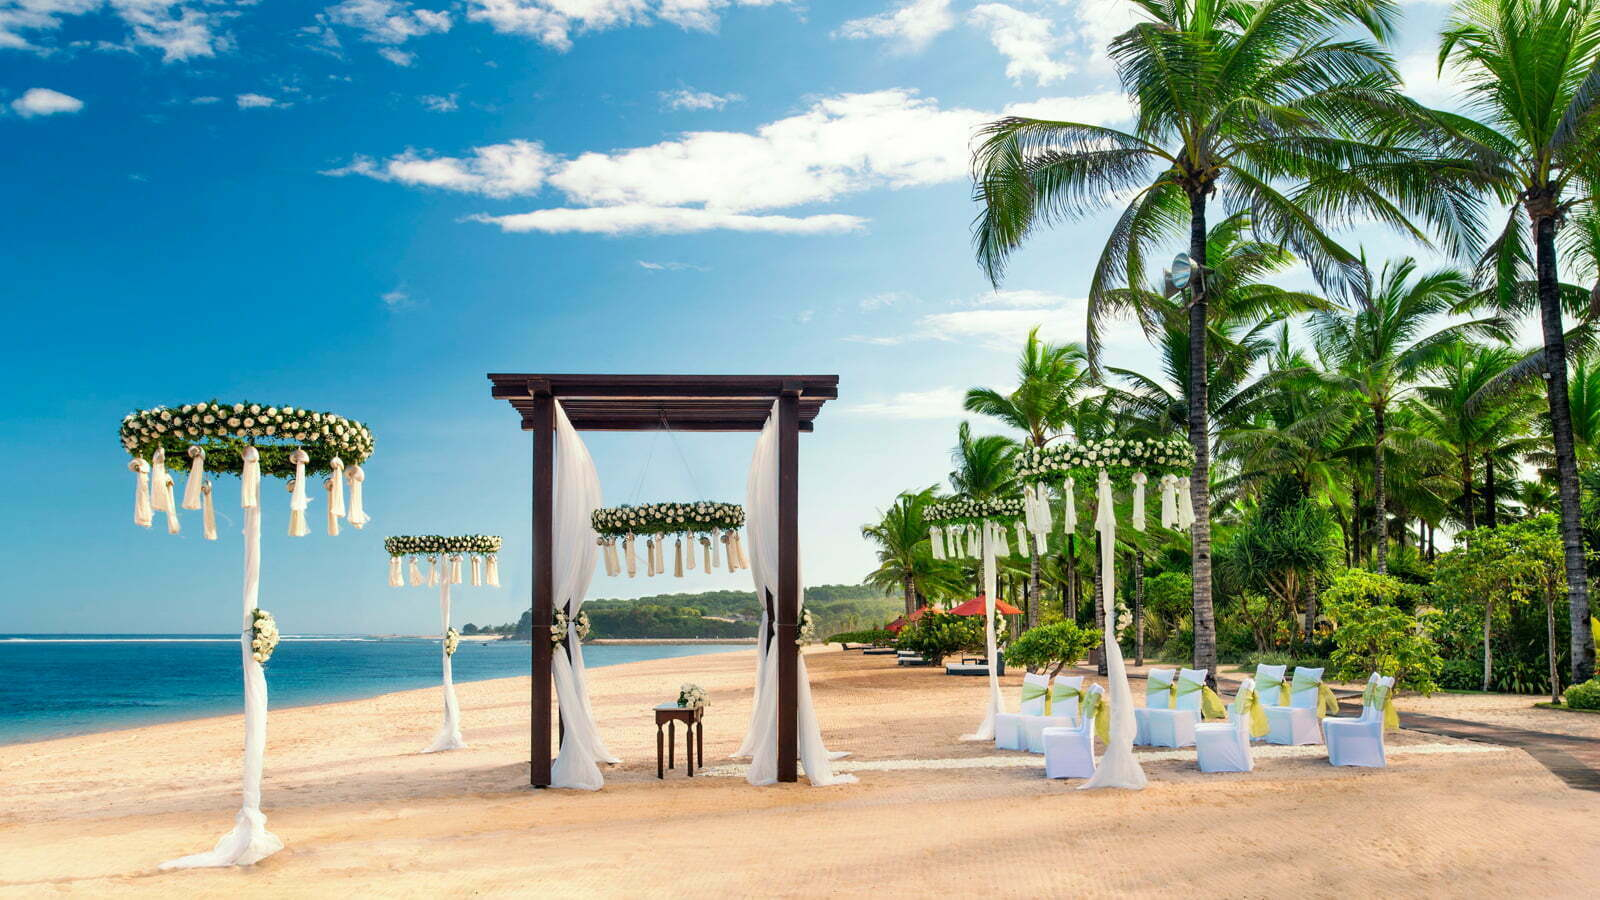 Destination Wedding In Bali The Island Of Gods